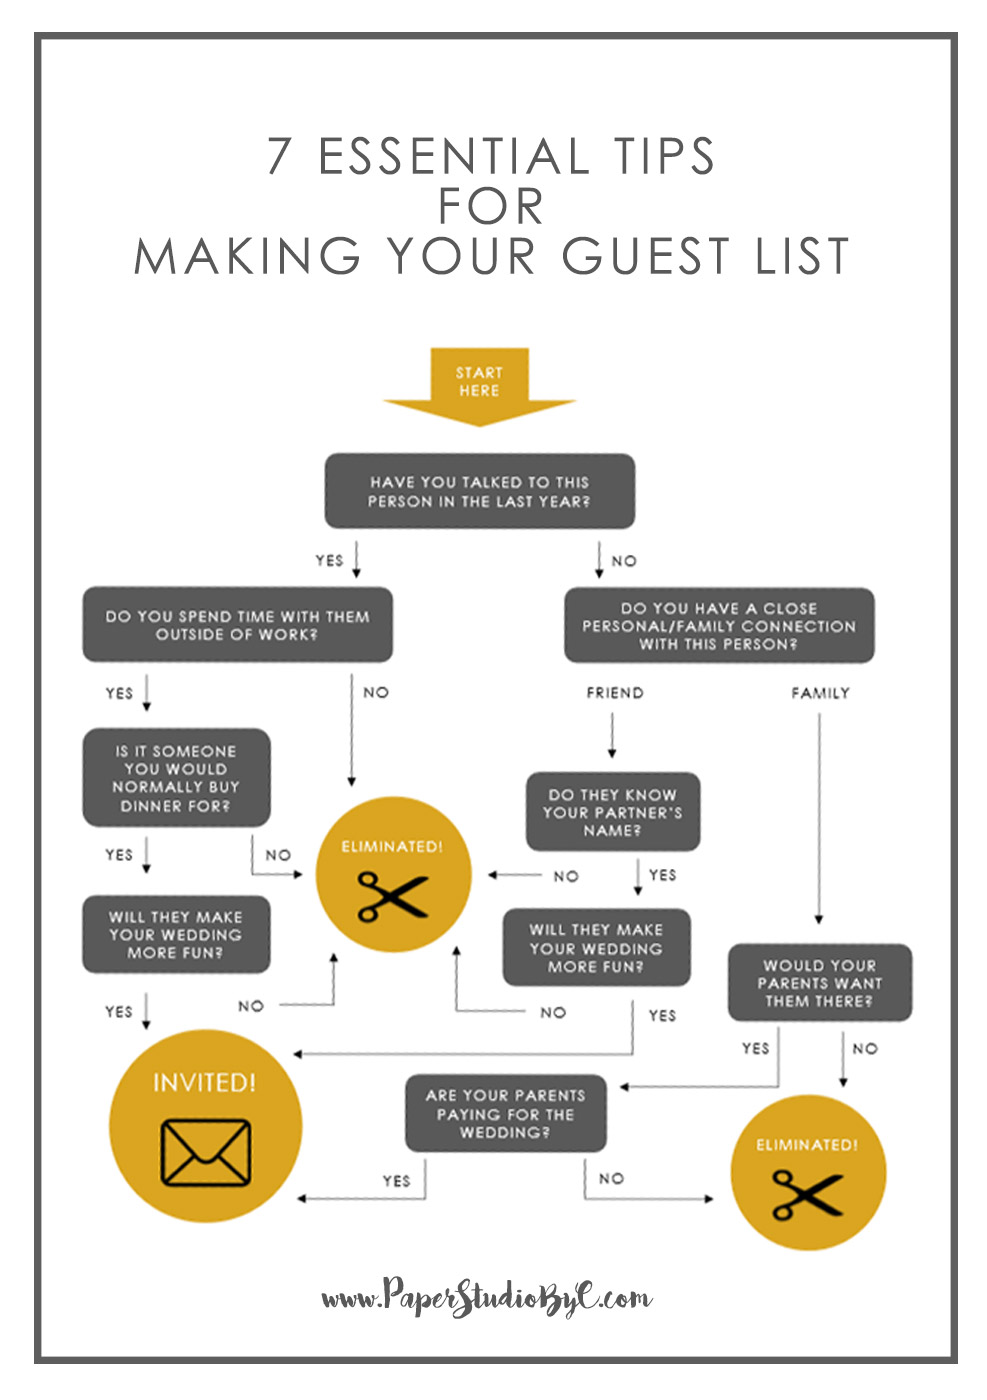 7 Essential Tips for Making Your Guest List